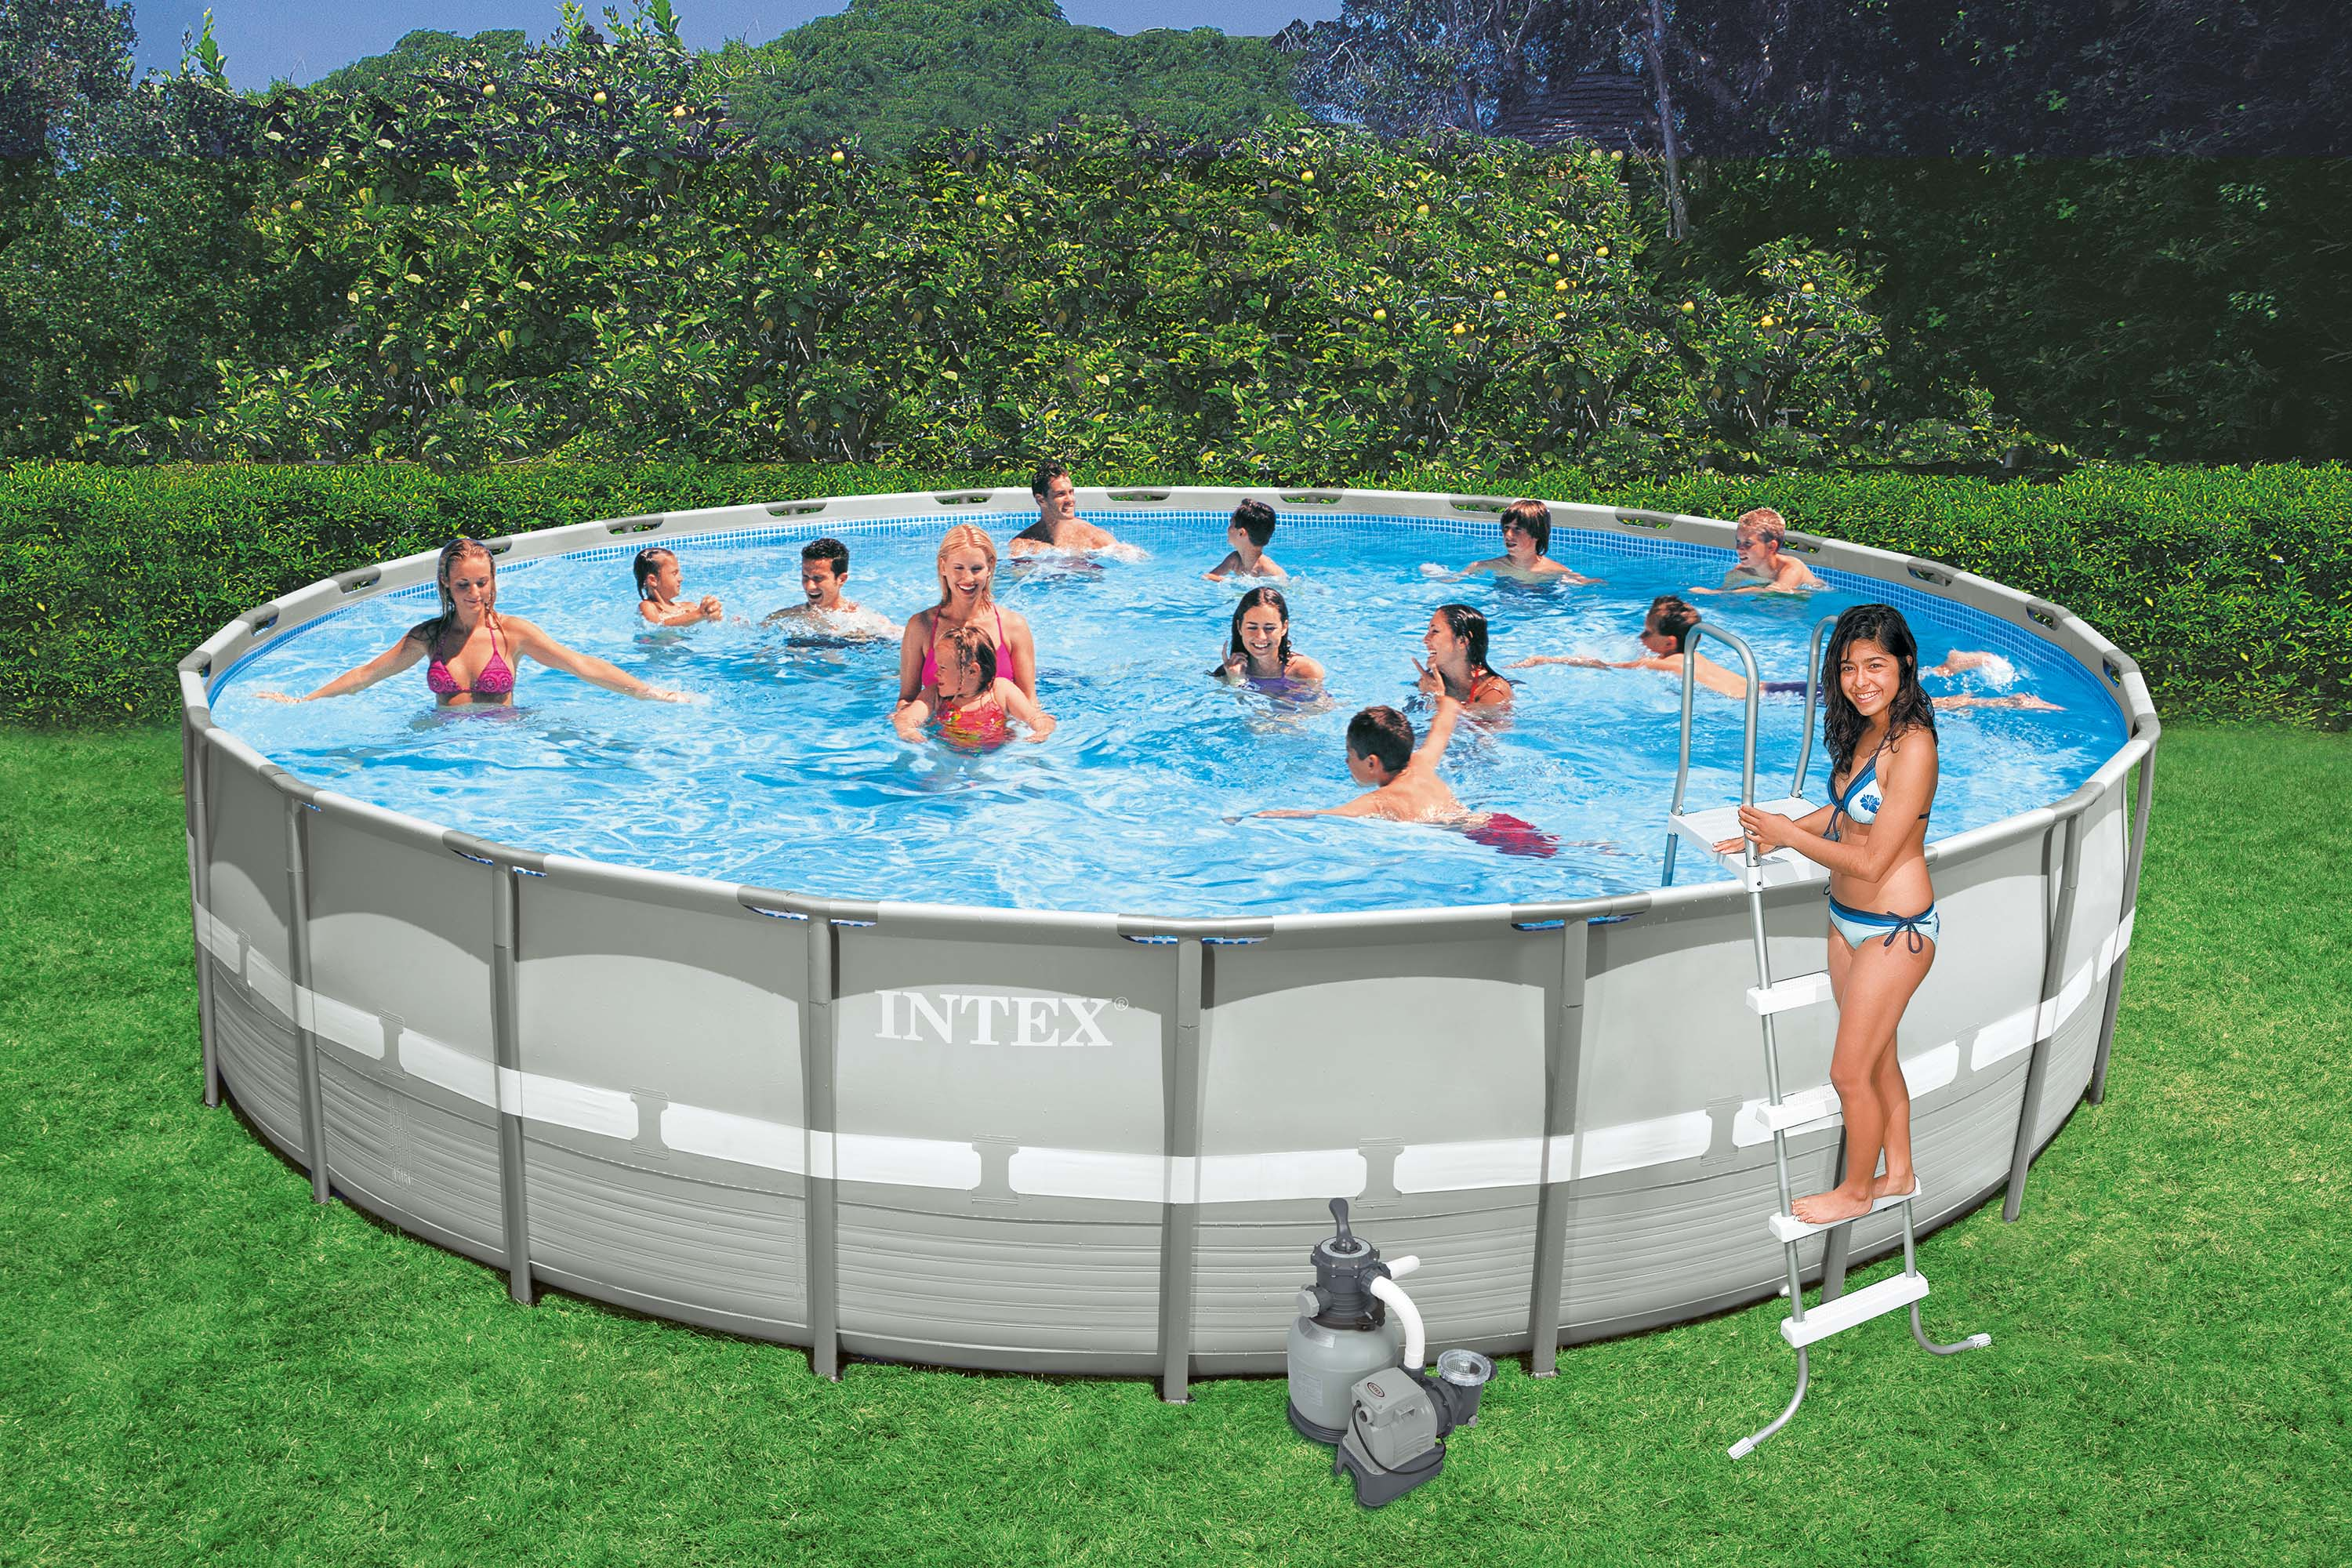 Pool Garten Mit Pumpe Garten Pool Intex Gallery Of Der Intex Easy Set Pools Mit